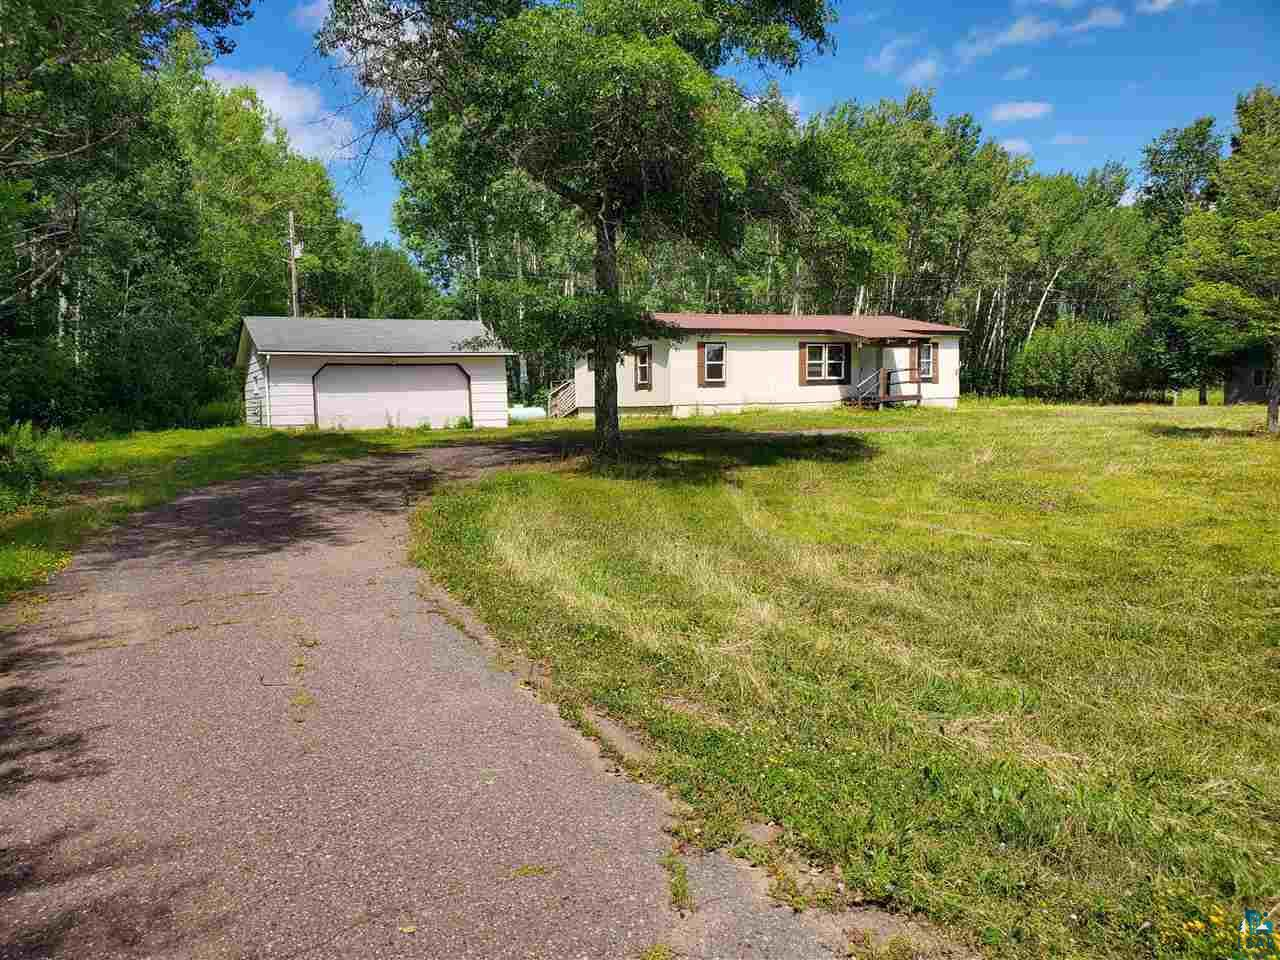 Three bed, two bath, two car garage home on a nice sized lot of five +/- acres. Formerly the Trails End you'll enjoy main level living with a deck off the back for relaxing. The master bedroom has an en suite full bath and walk-in closet. The front bedroom could also be used as an office and has some nice built-ins. Located in Mason and approximately fifteen minutes to Ashland and the beaches of Lake Superior.